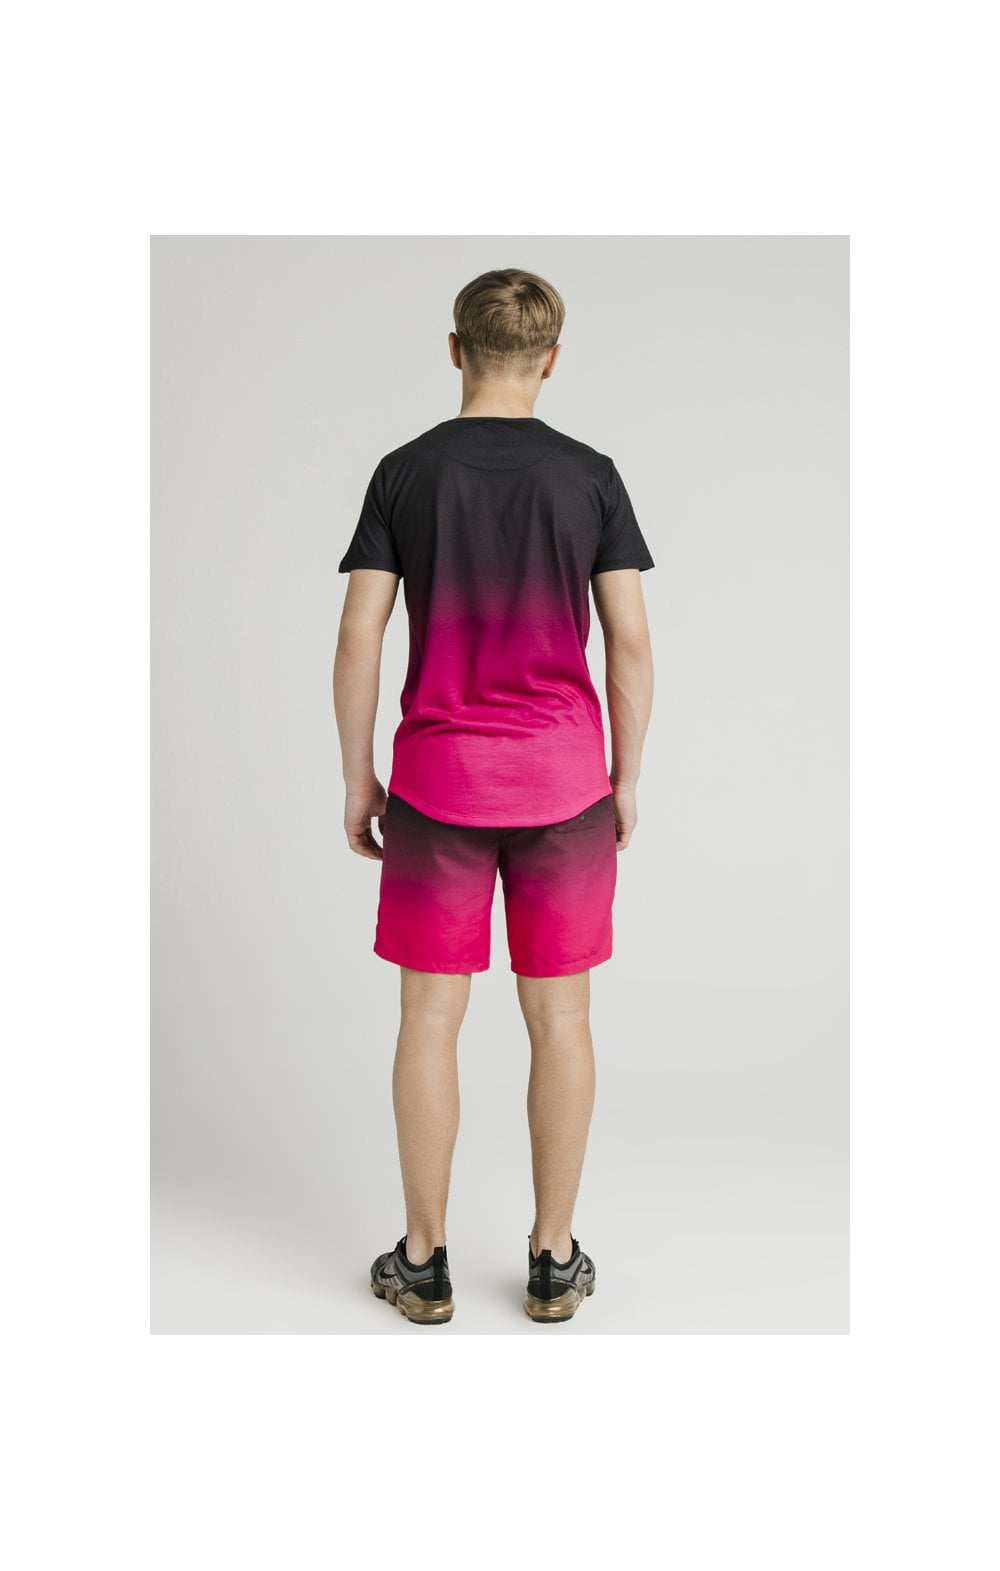 Illusive London Swim Shorts - Black & Pink (8)